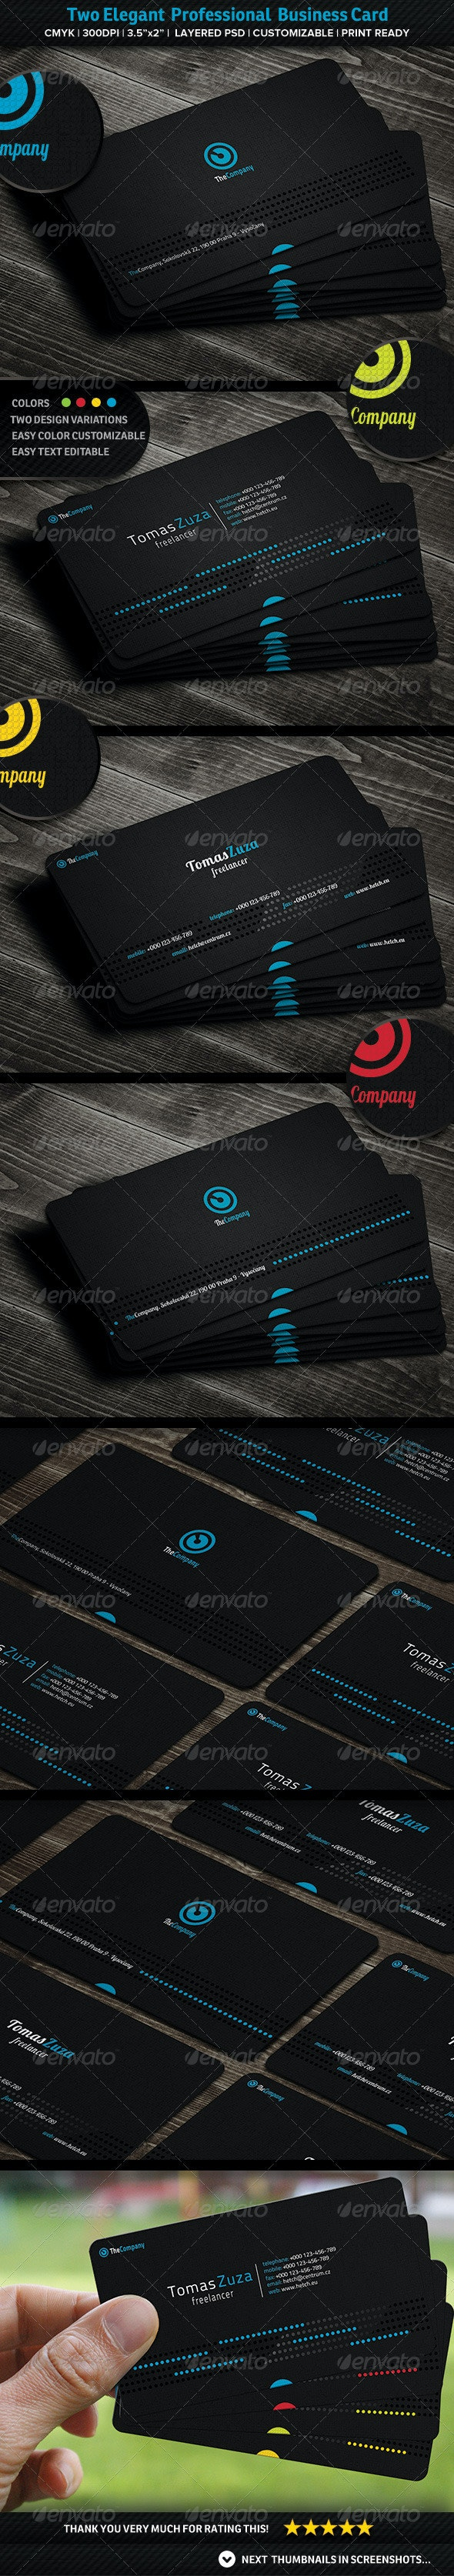 Elegant Professional Business Card - Creative Business Cards